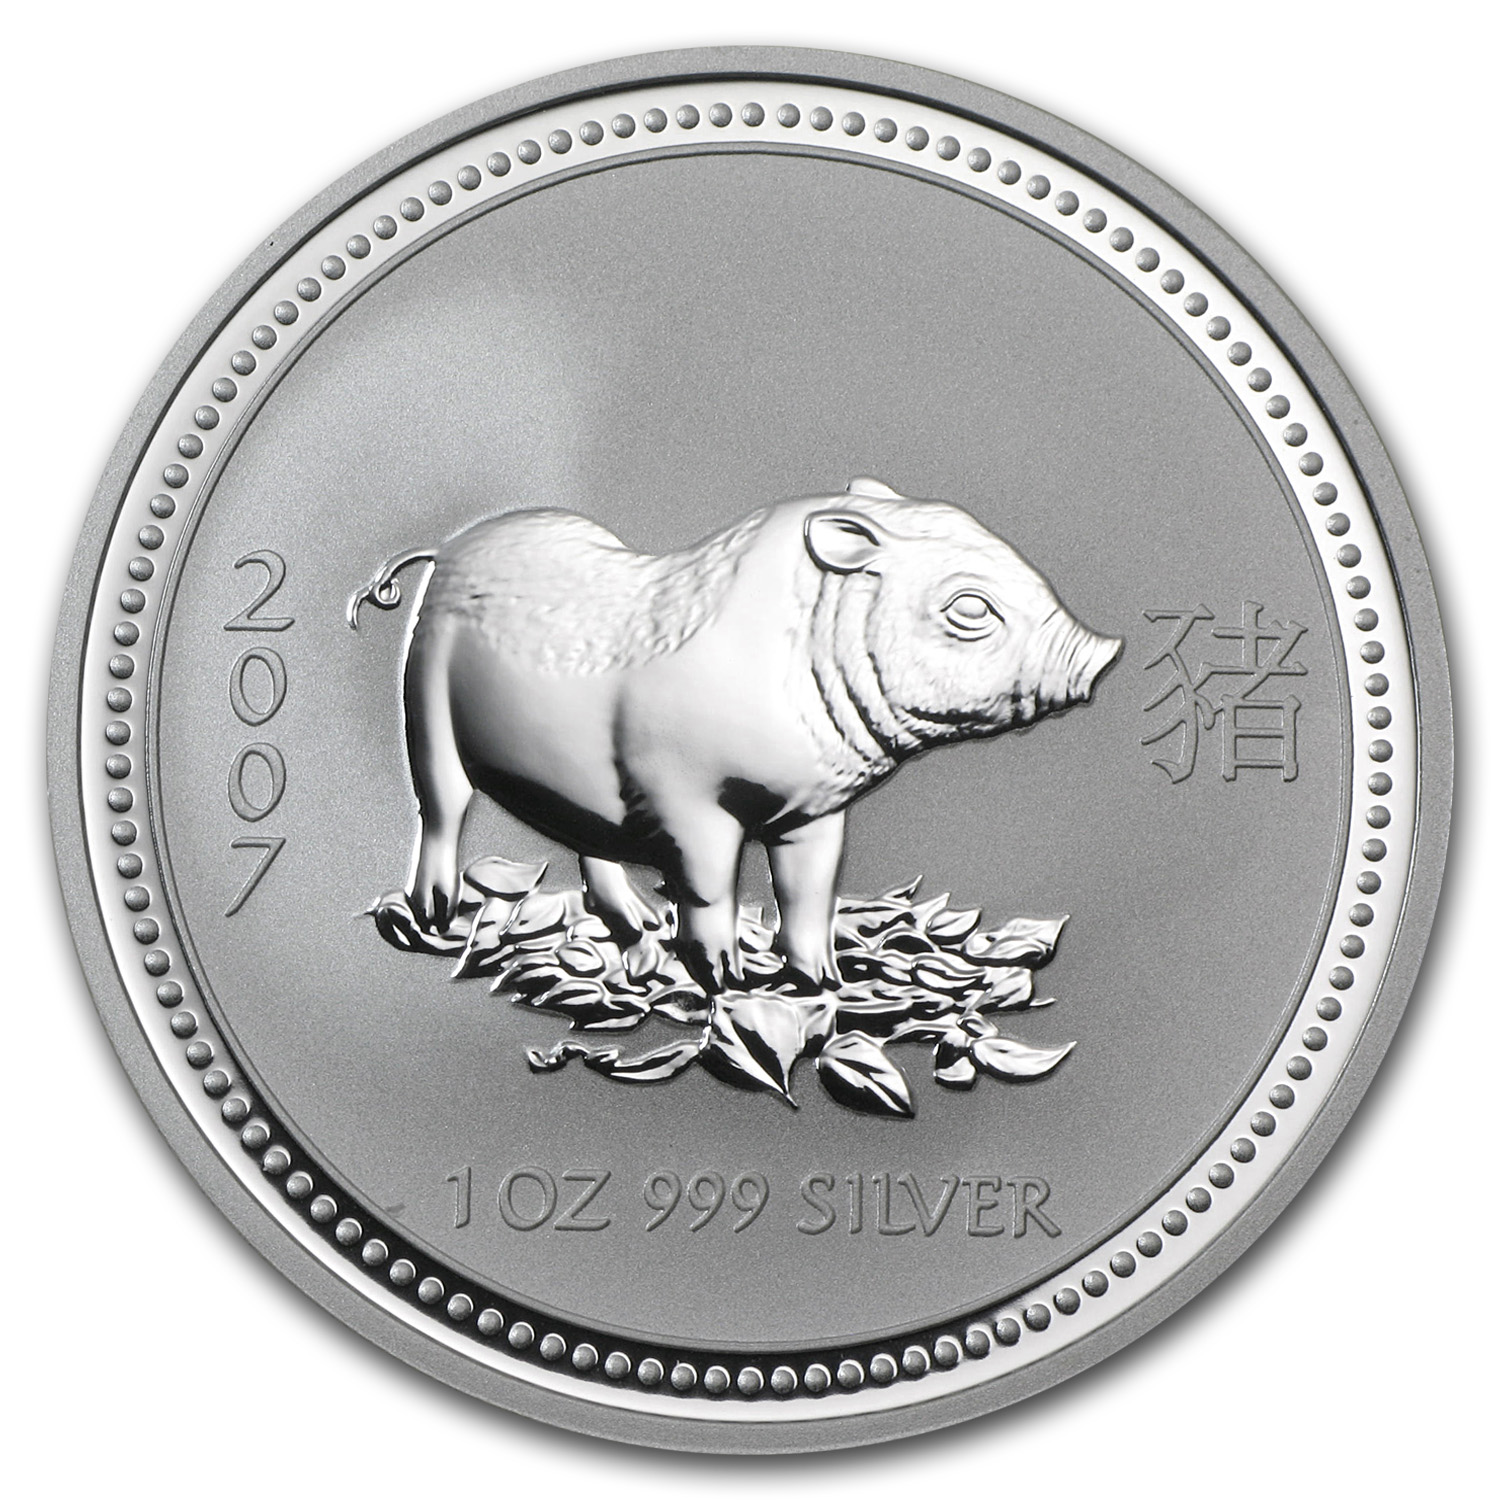 2007 Australia 1 oz Silver Year of the Pig BU